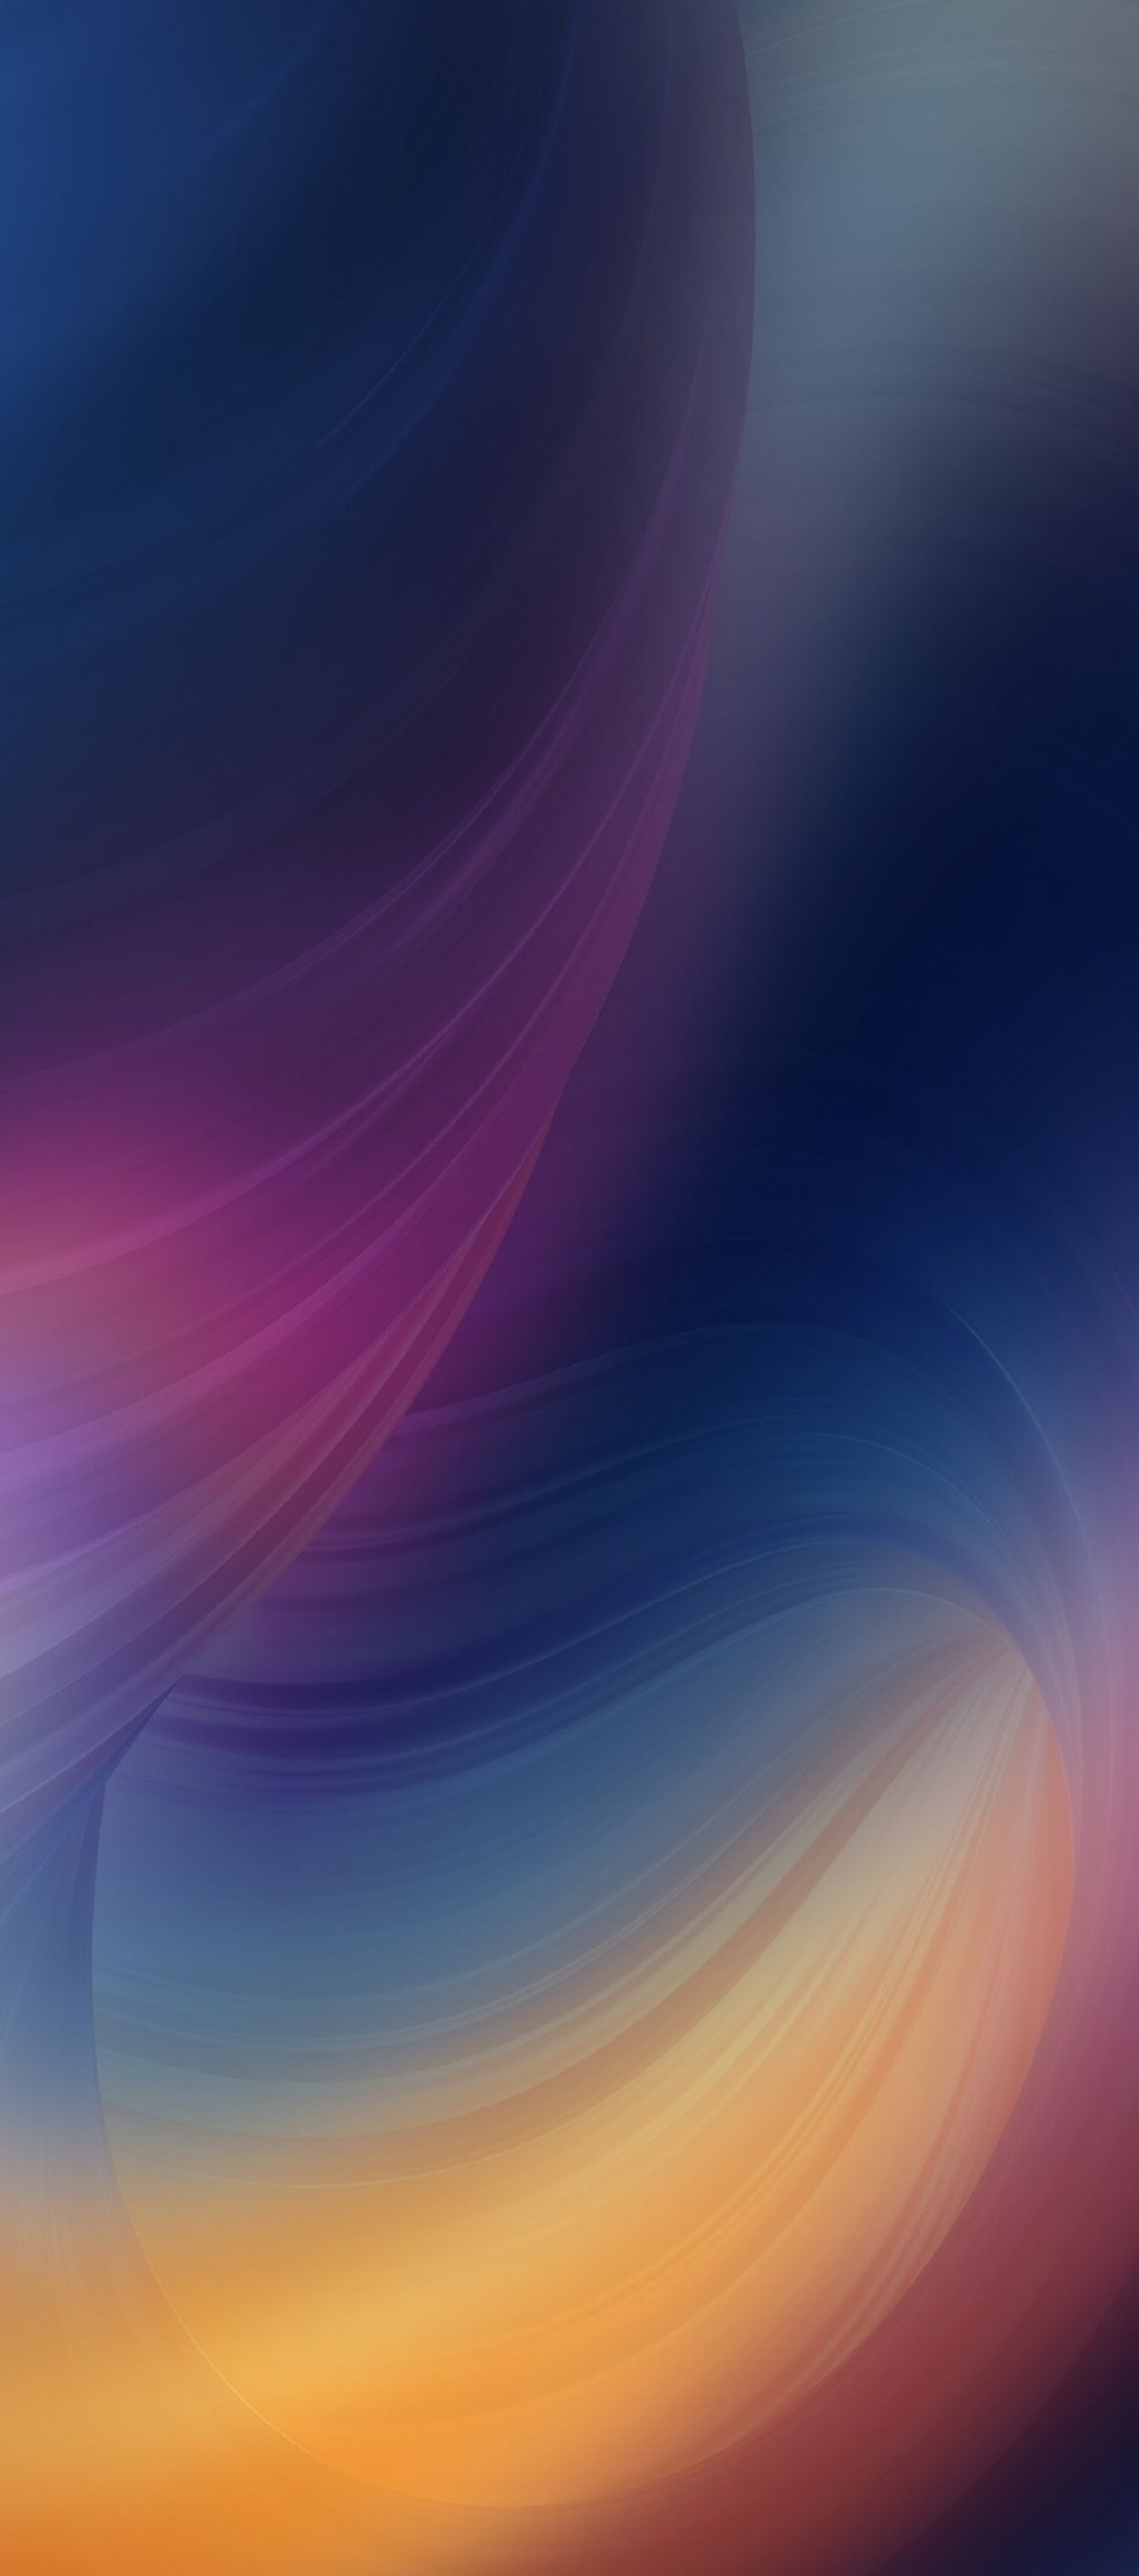 iOS 11, iPhone X, purple, blue, clean, simple, abstract, apple, wallpaper, iphone 8, clean ...